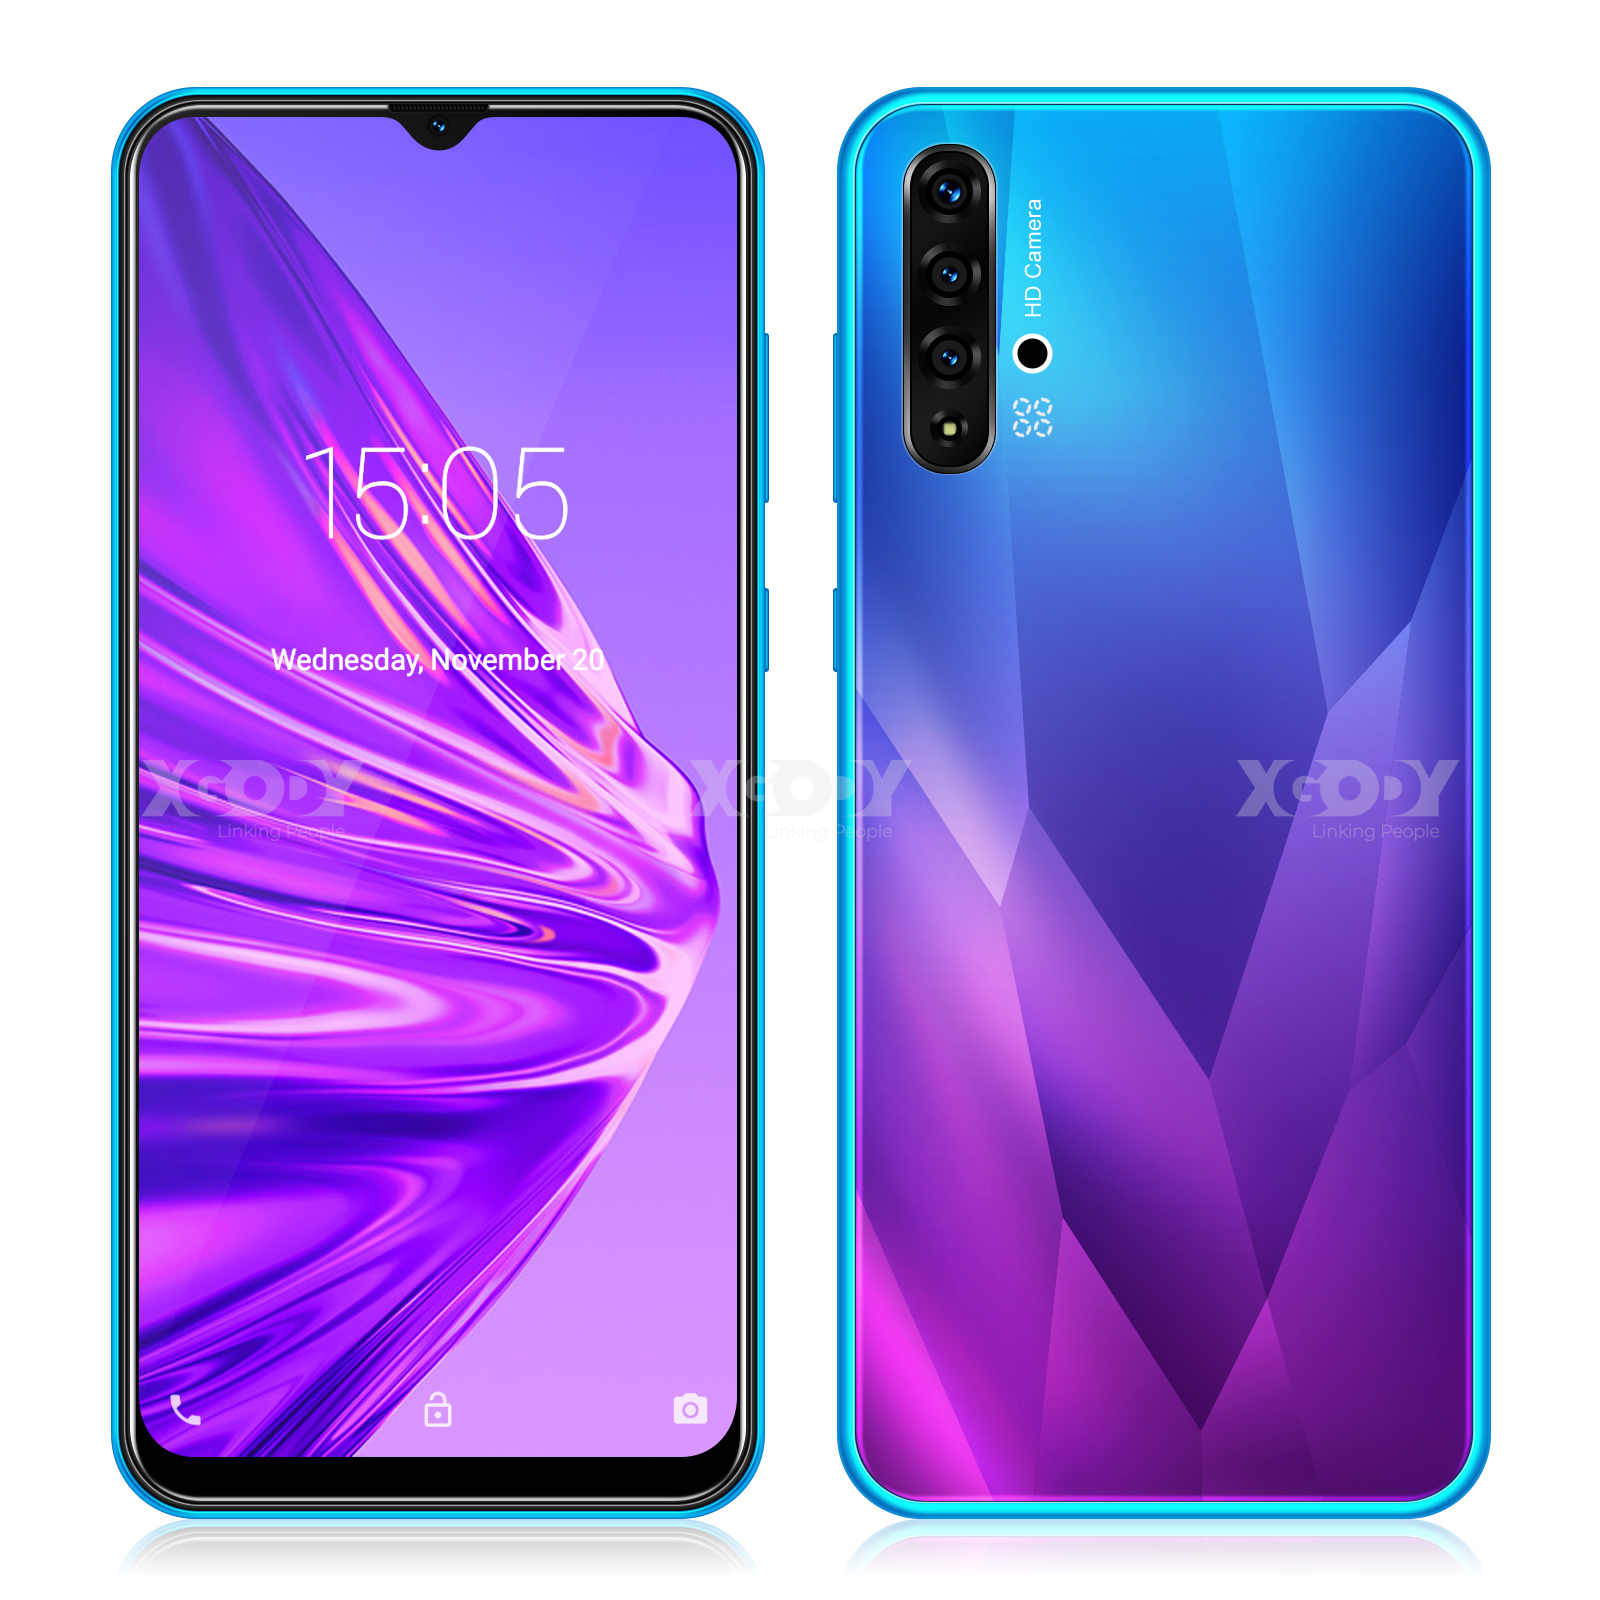 "XGODY A50 3G Smartphone 6.5"" 19:9 Android 9.0 1GB RAM 4GB ROM 5MP Camera Quad Core Dual SIM GPS WiFi Mobile Phones CellPhone 1"